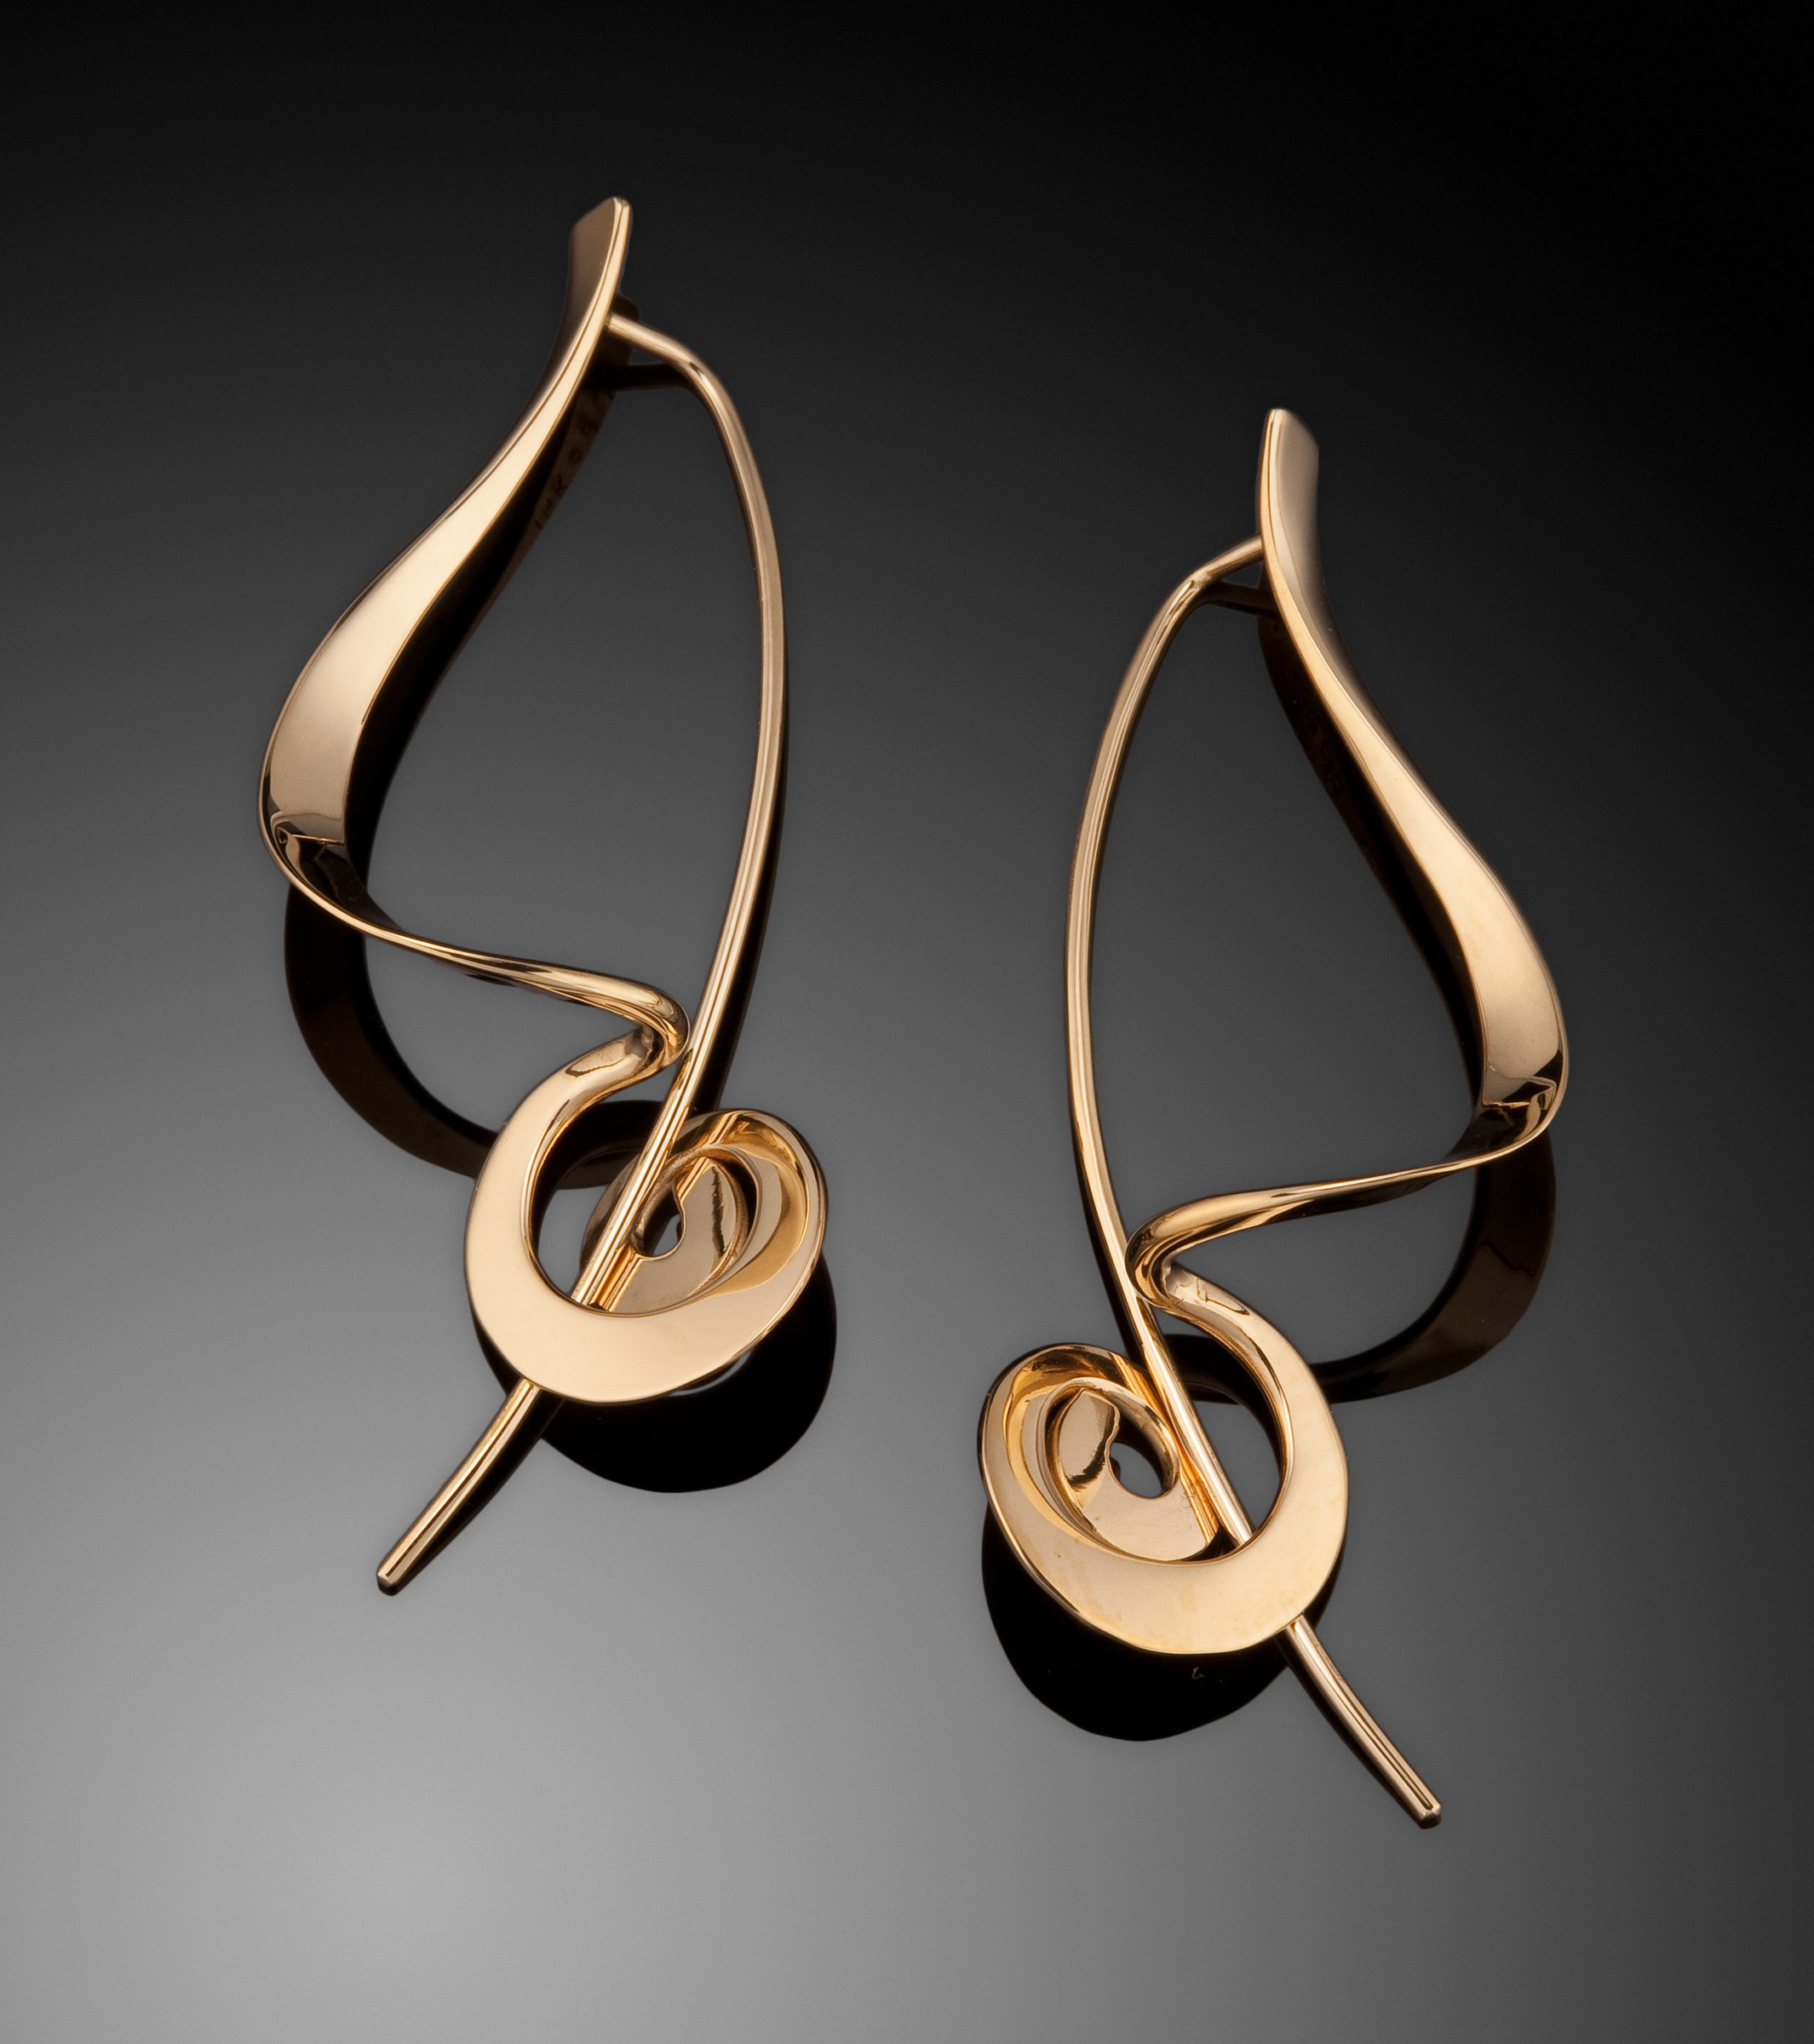 Artful Home Sculptural Earrings In 14k Gold By Ben Dyer Gold Earrings